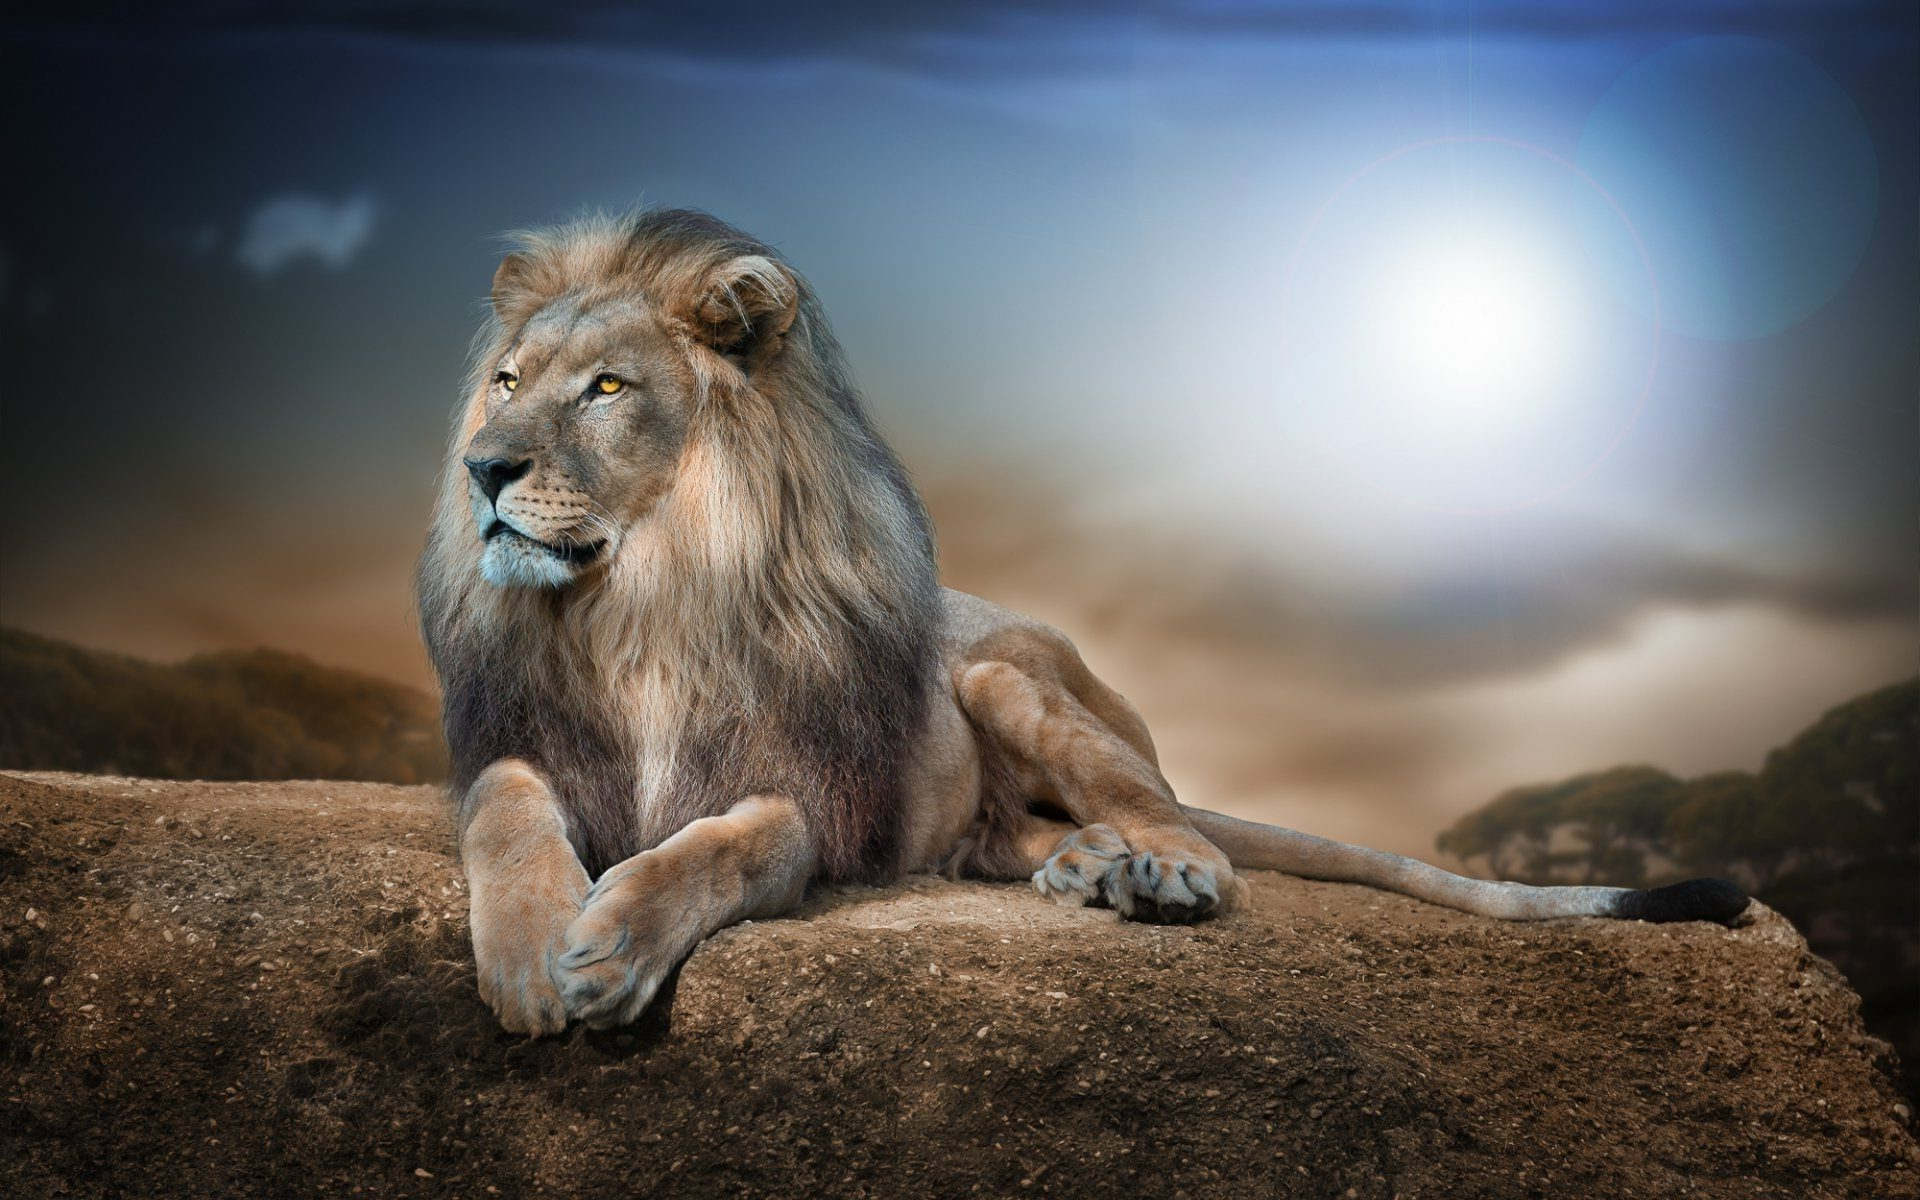 Lion Wallpapers 4k Hd Full Hd Pictures